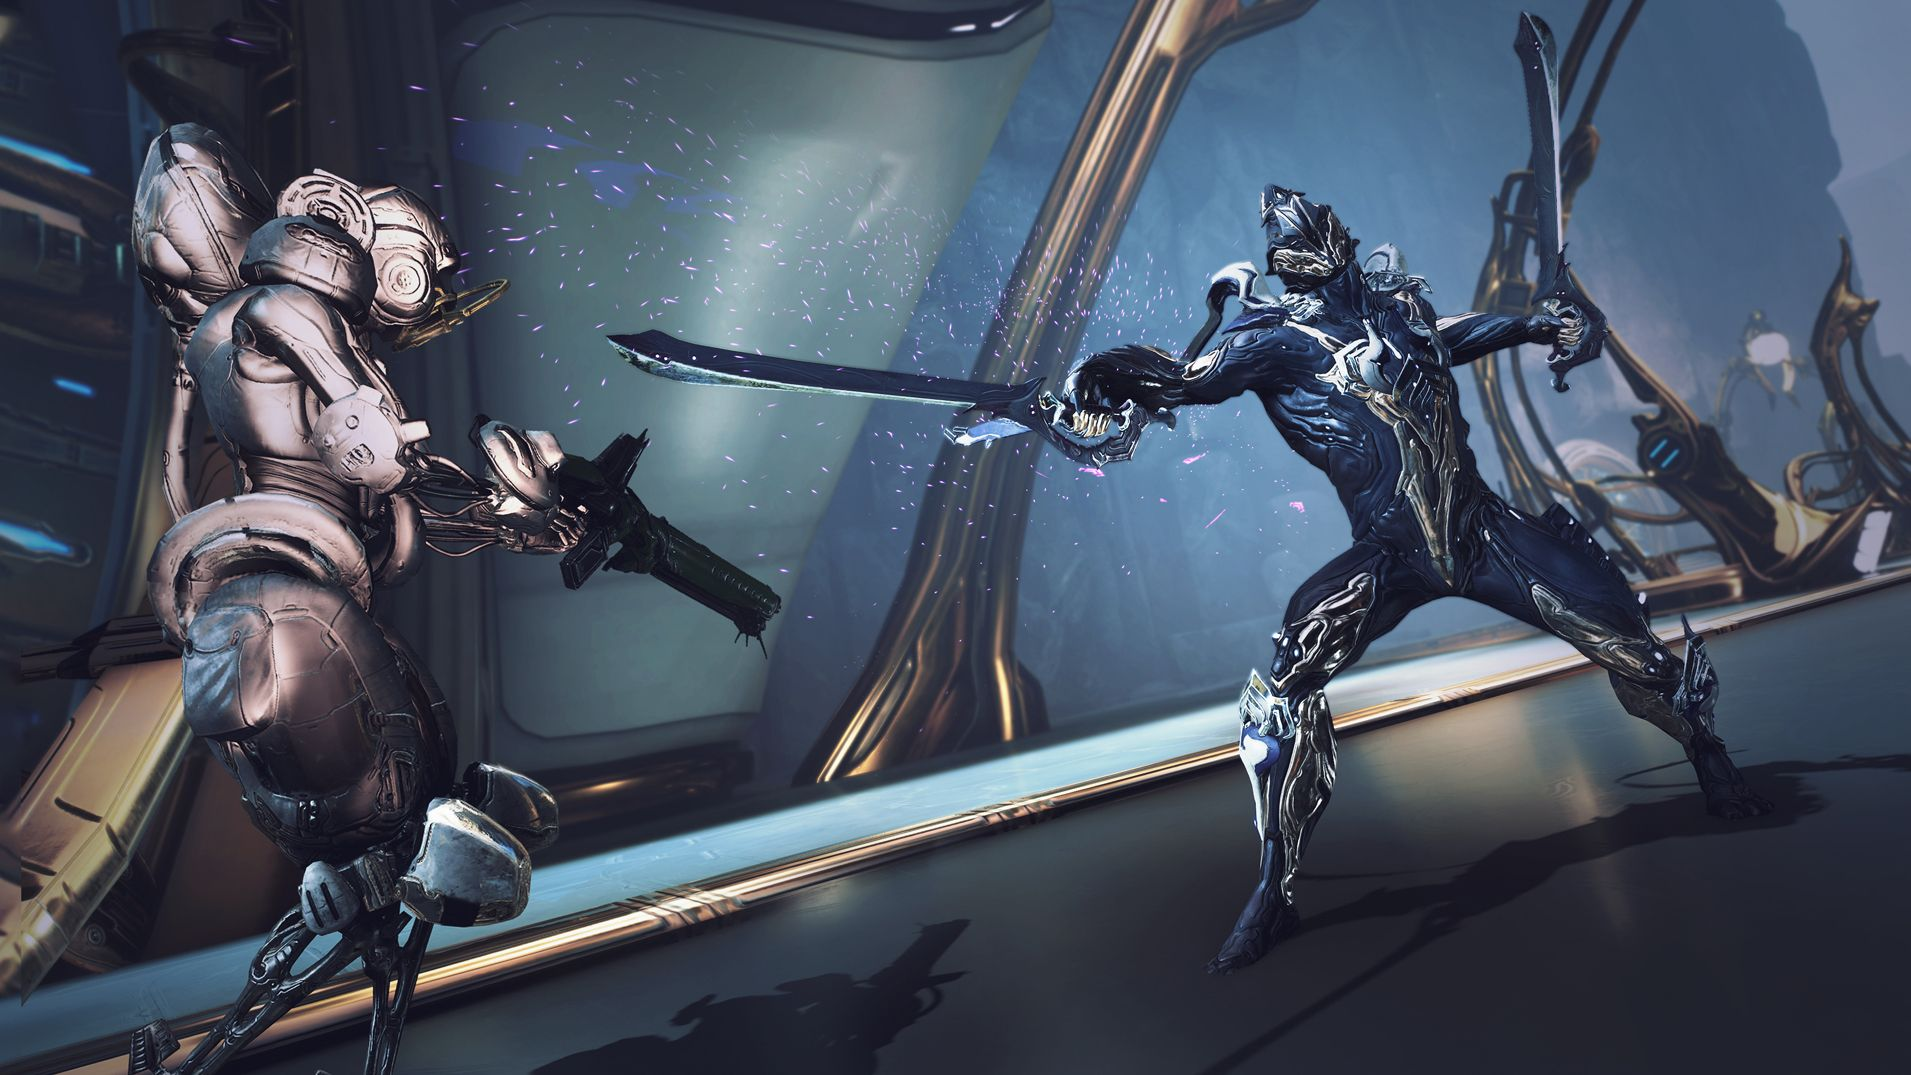 Warframe is coming to PS5 and Xbox Series X in 2020 Xbox